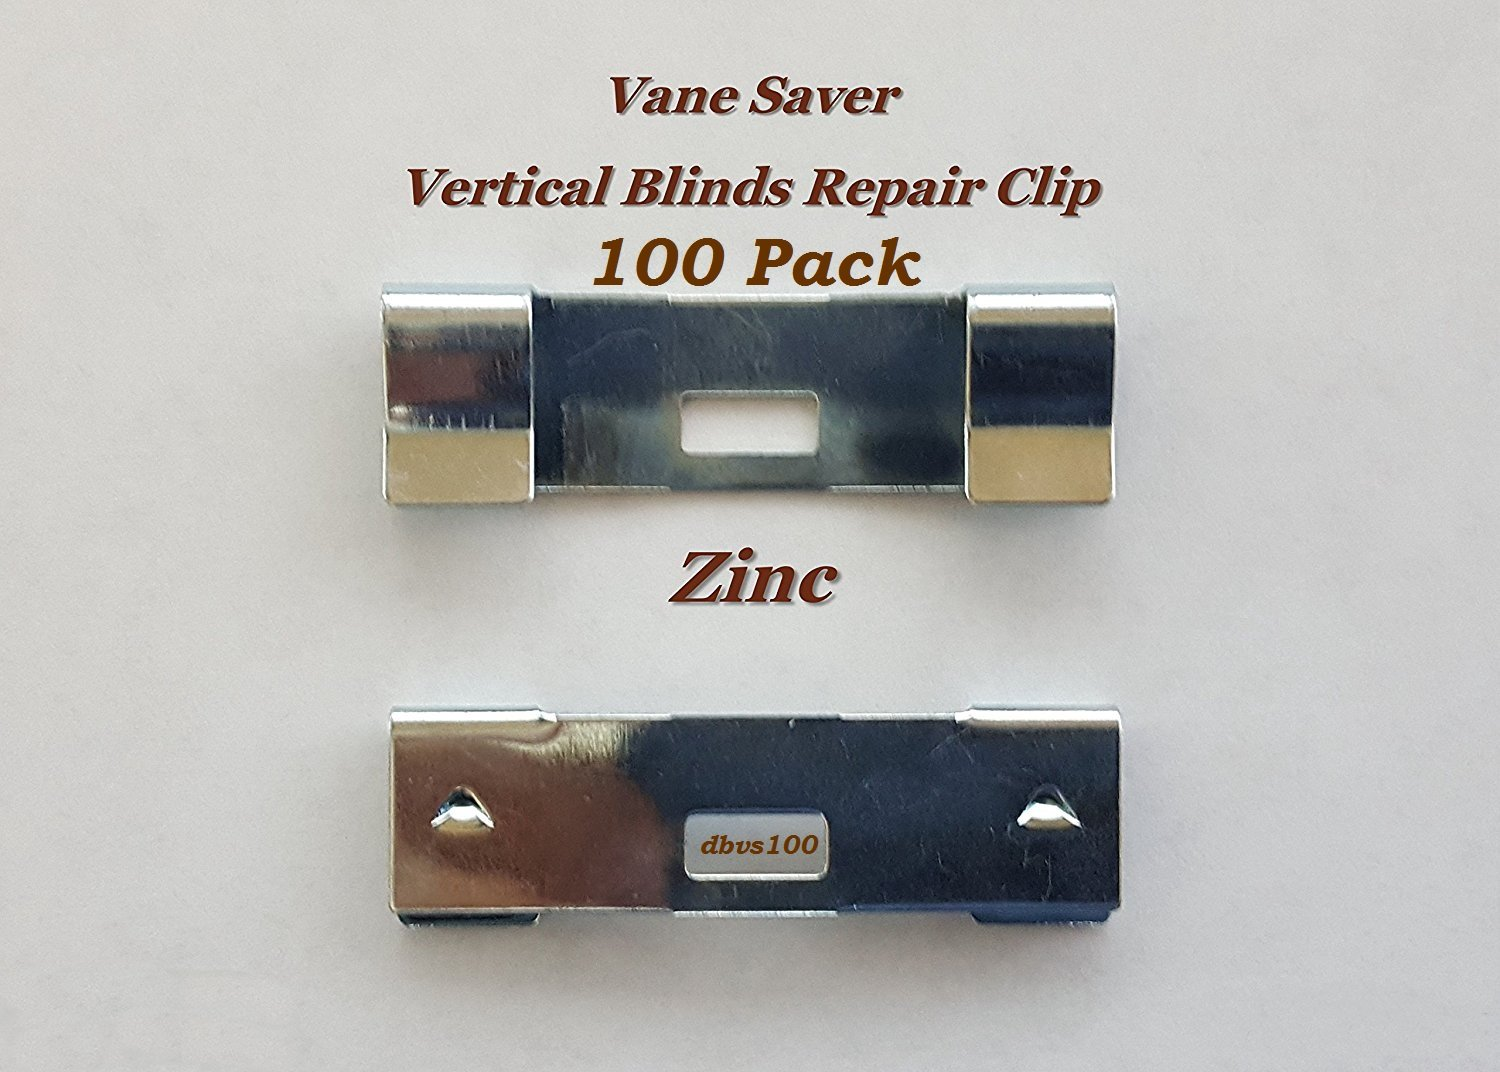 100 Pack VERTICAL BLIND Vane Saver - Zinc Curved Repair Clips - Fixes Broken Holes by dblinds1